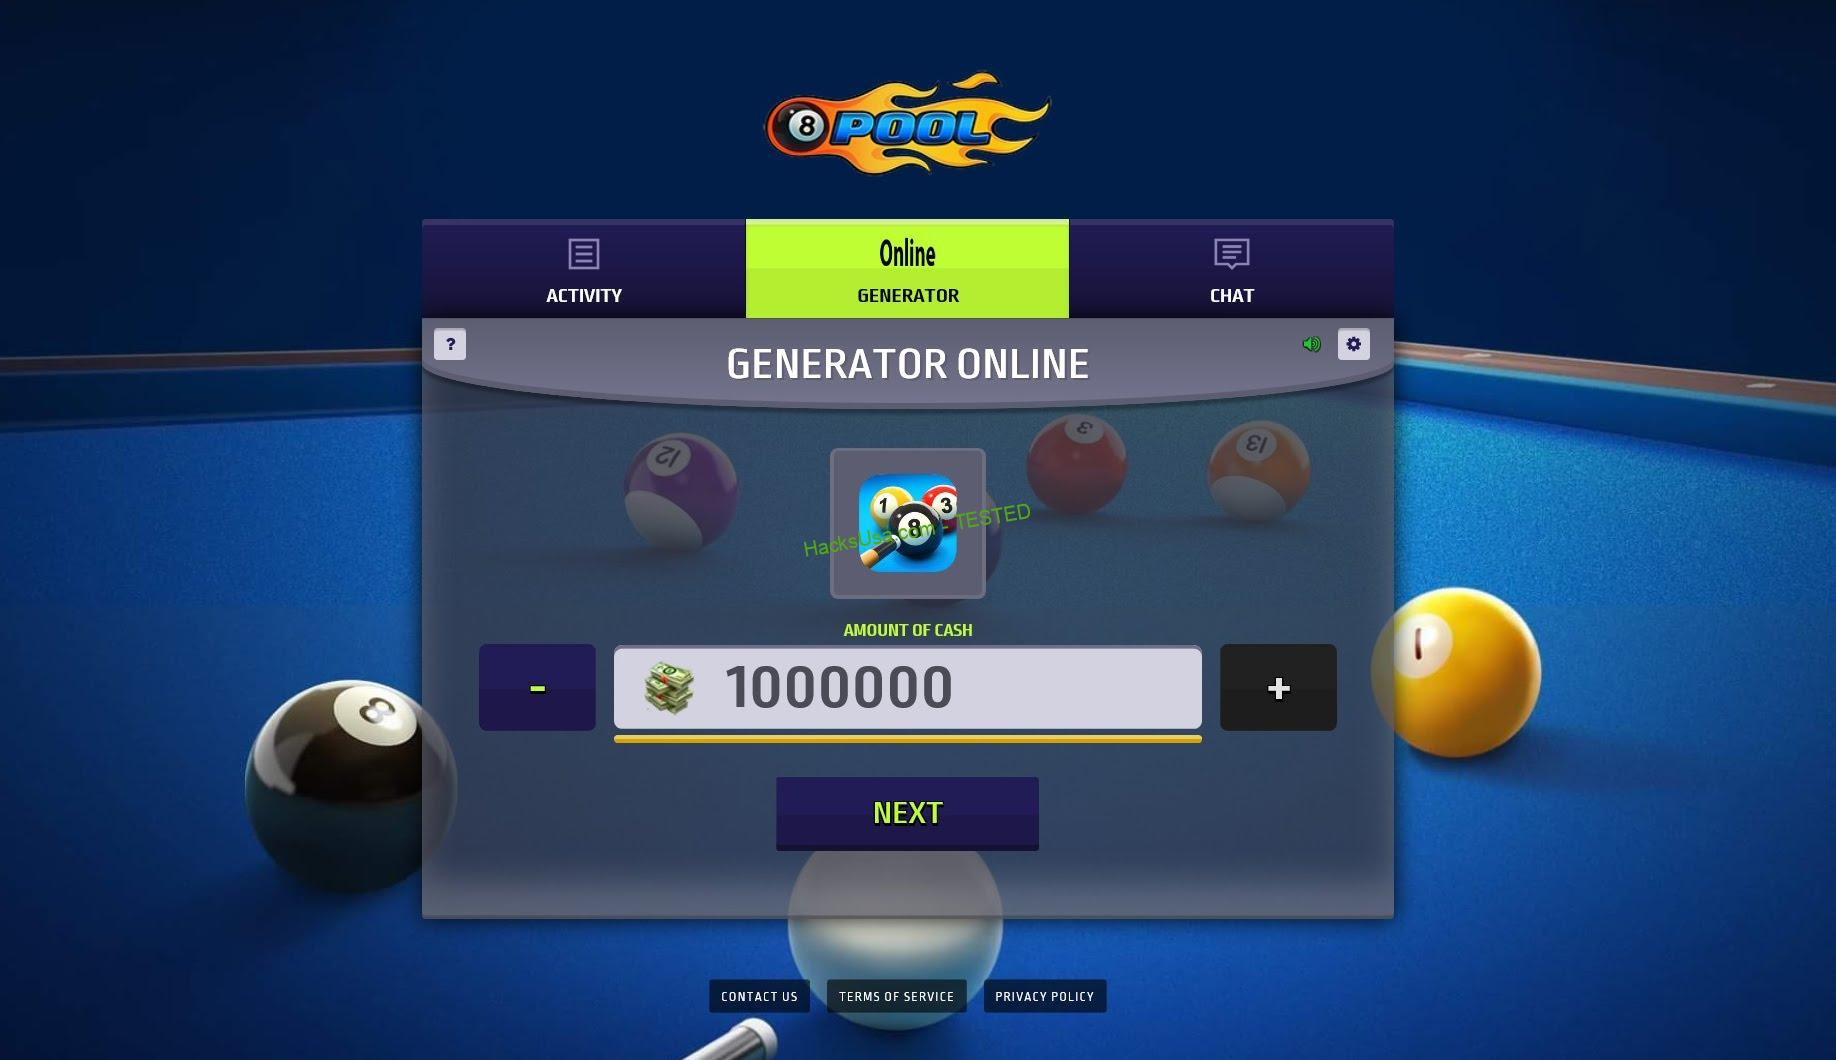 8 Ball Pool Hack Free Coins and Credits